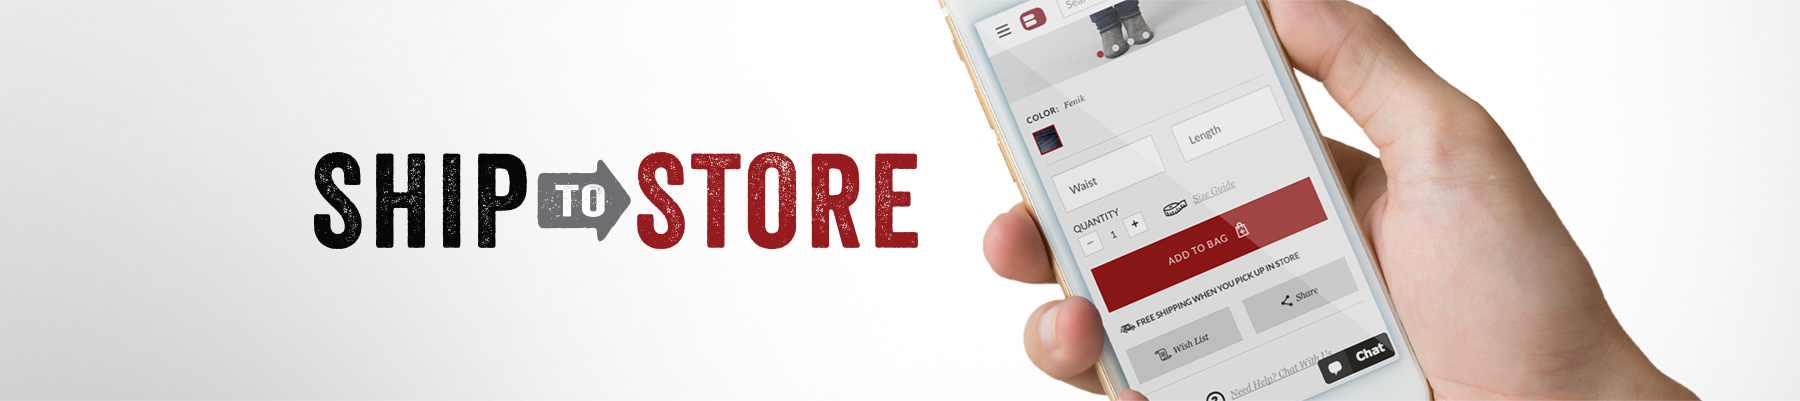 Ship to Store - Header Banner